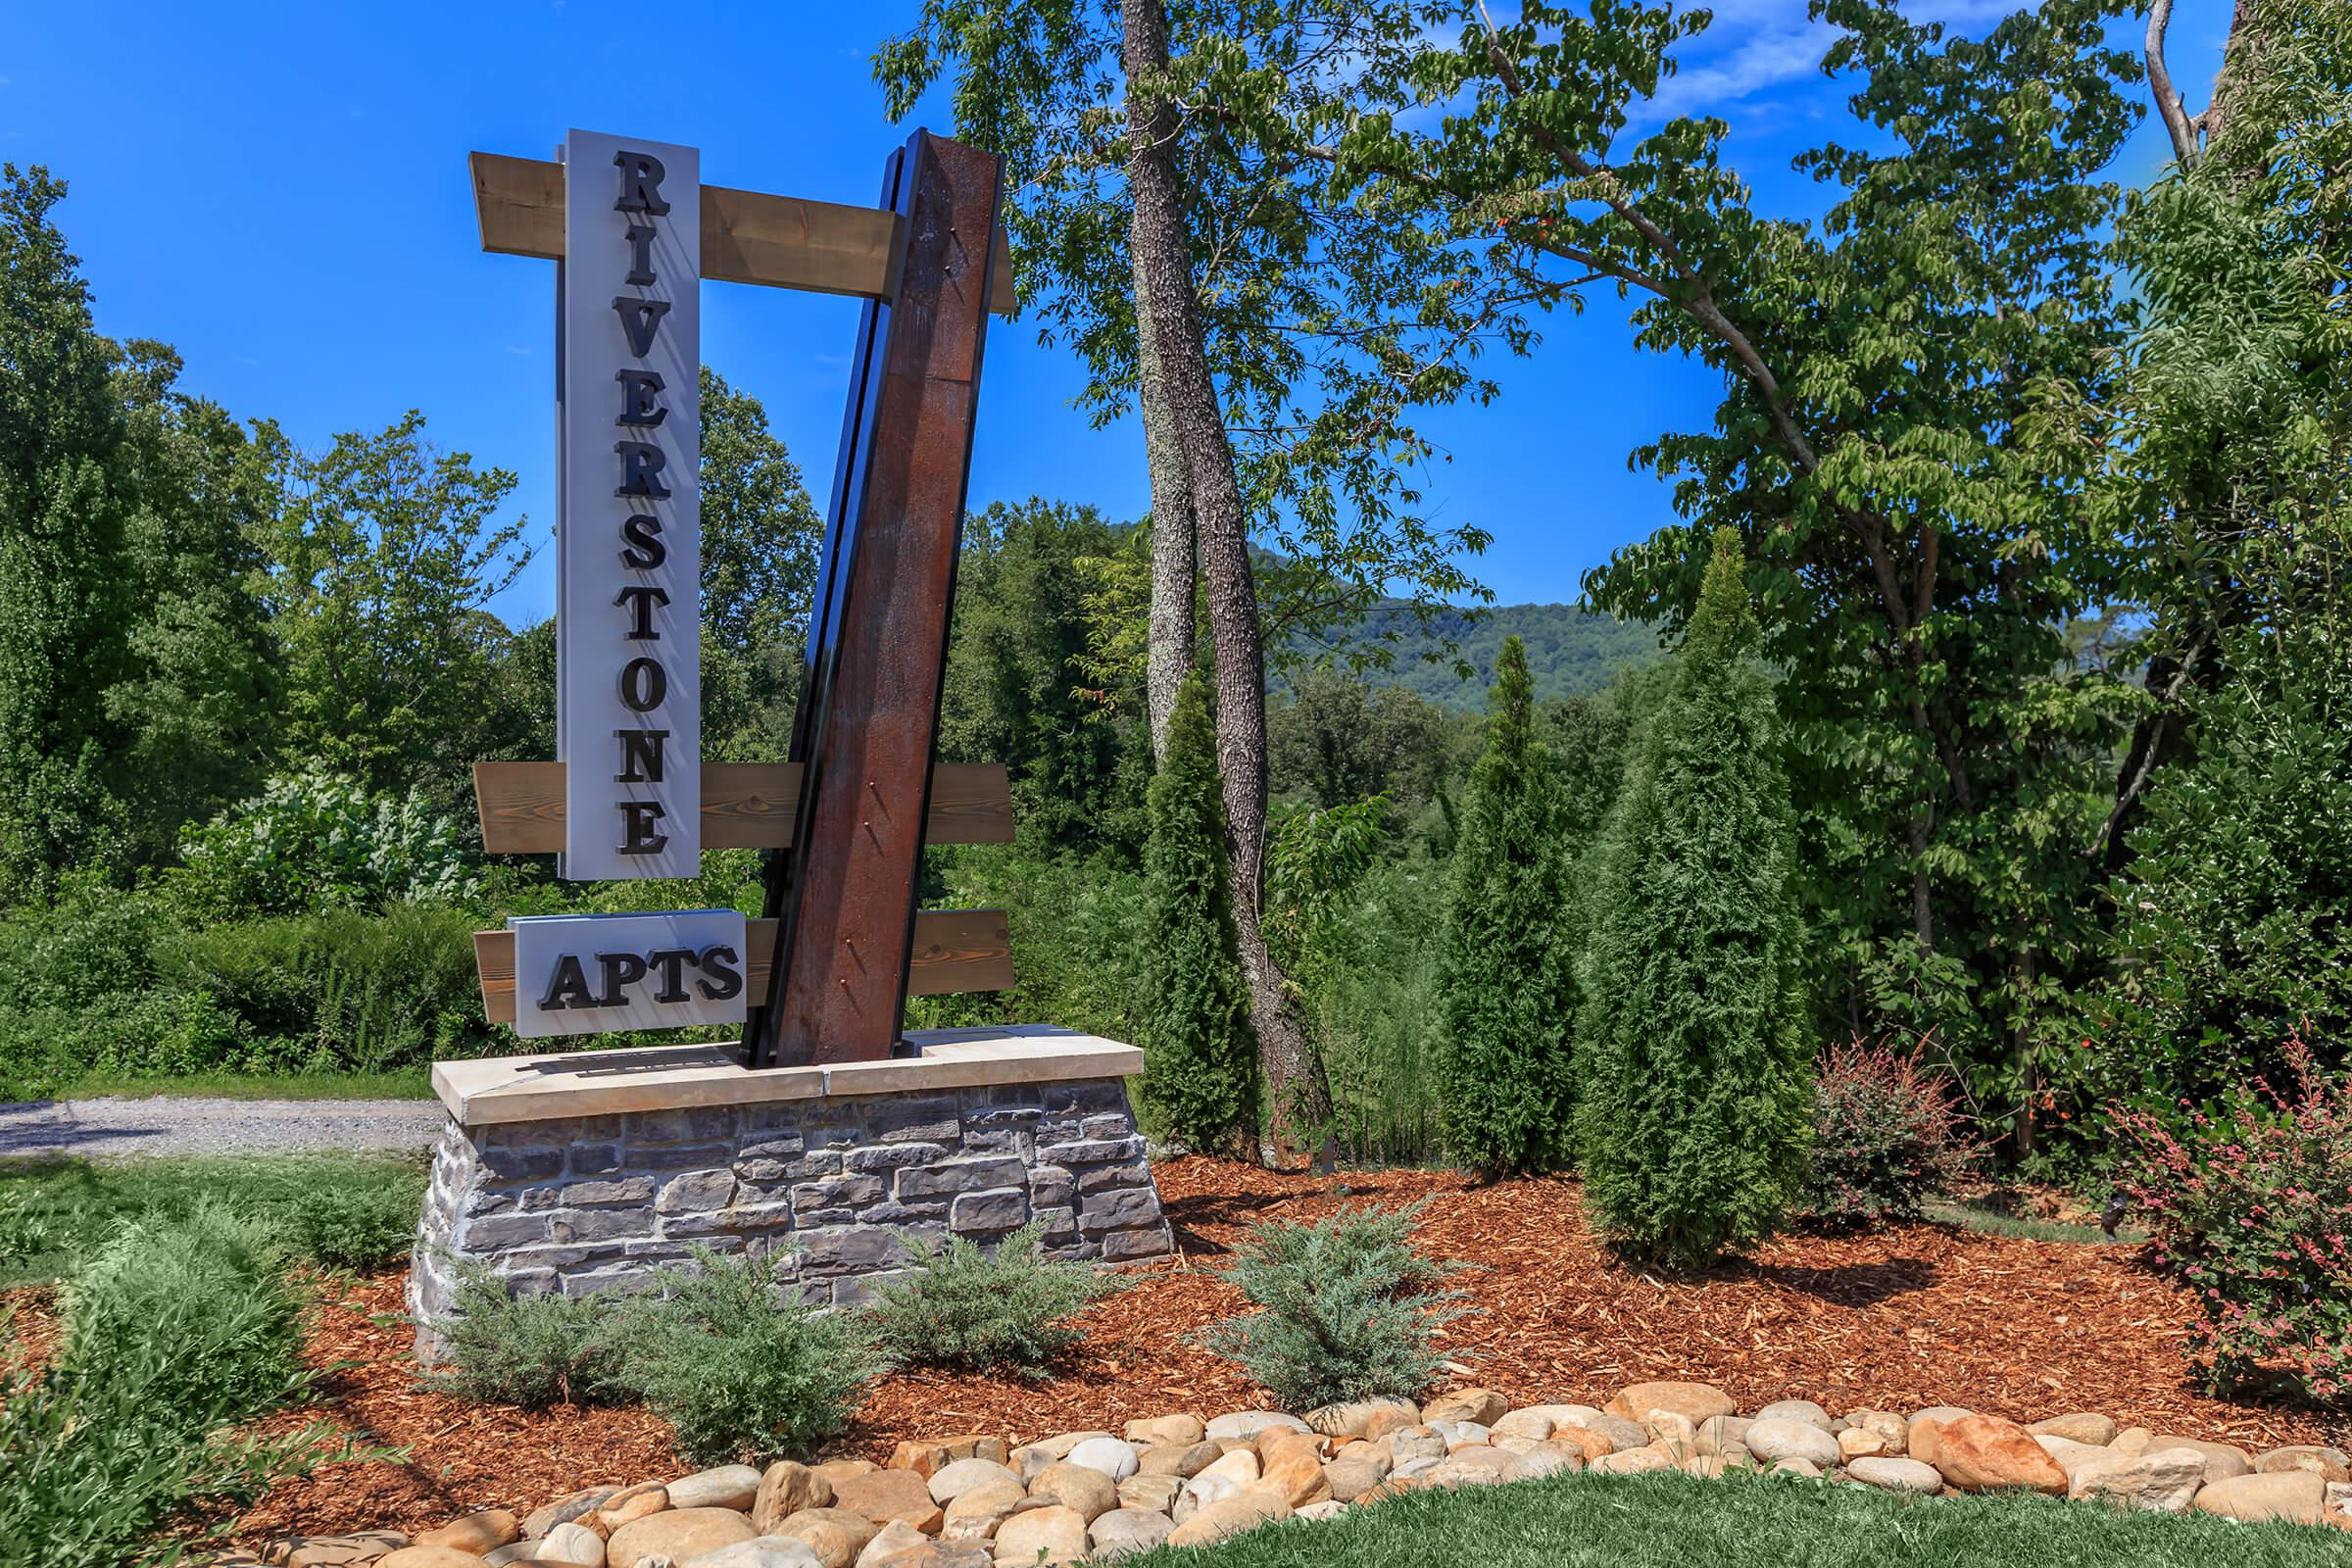 Come Visit Riverstone Apartments At Long Shoals In Arden, North Carolina